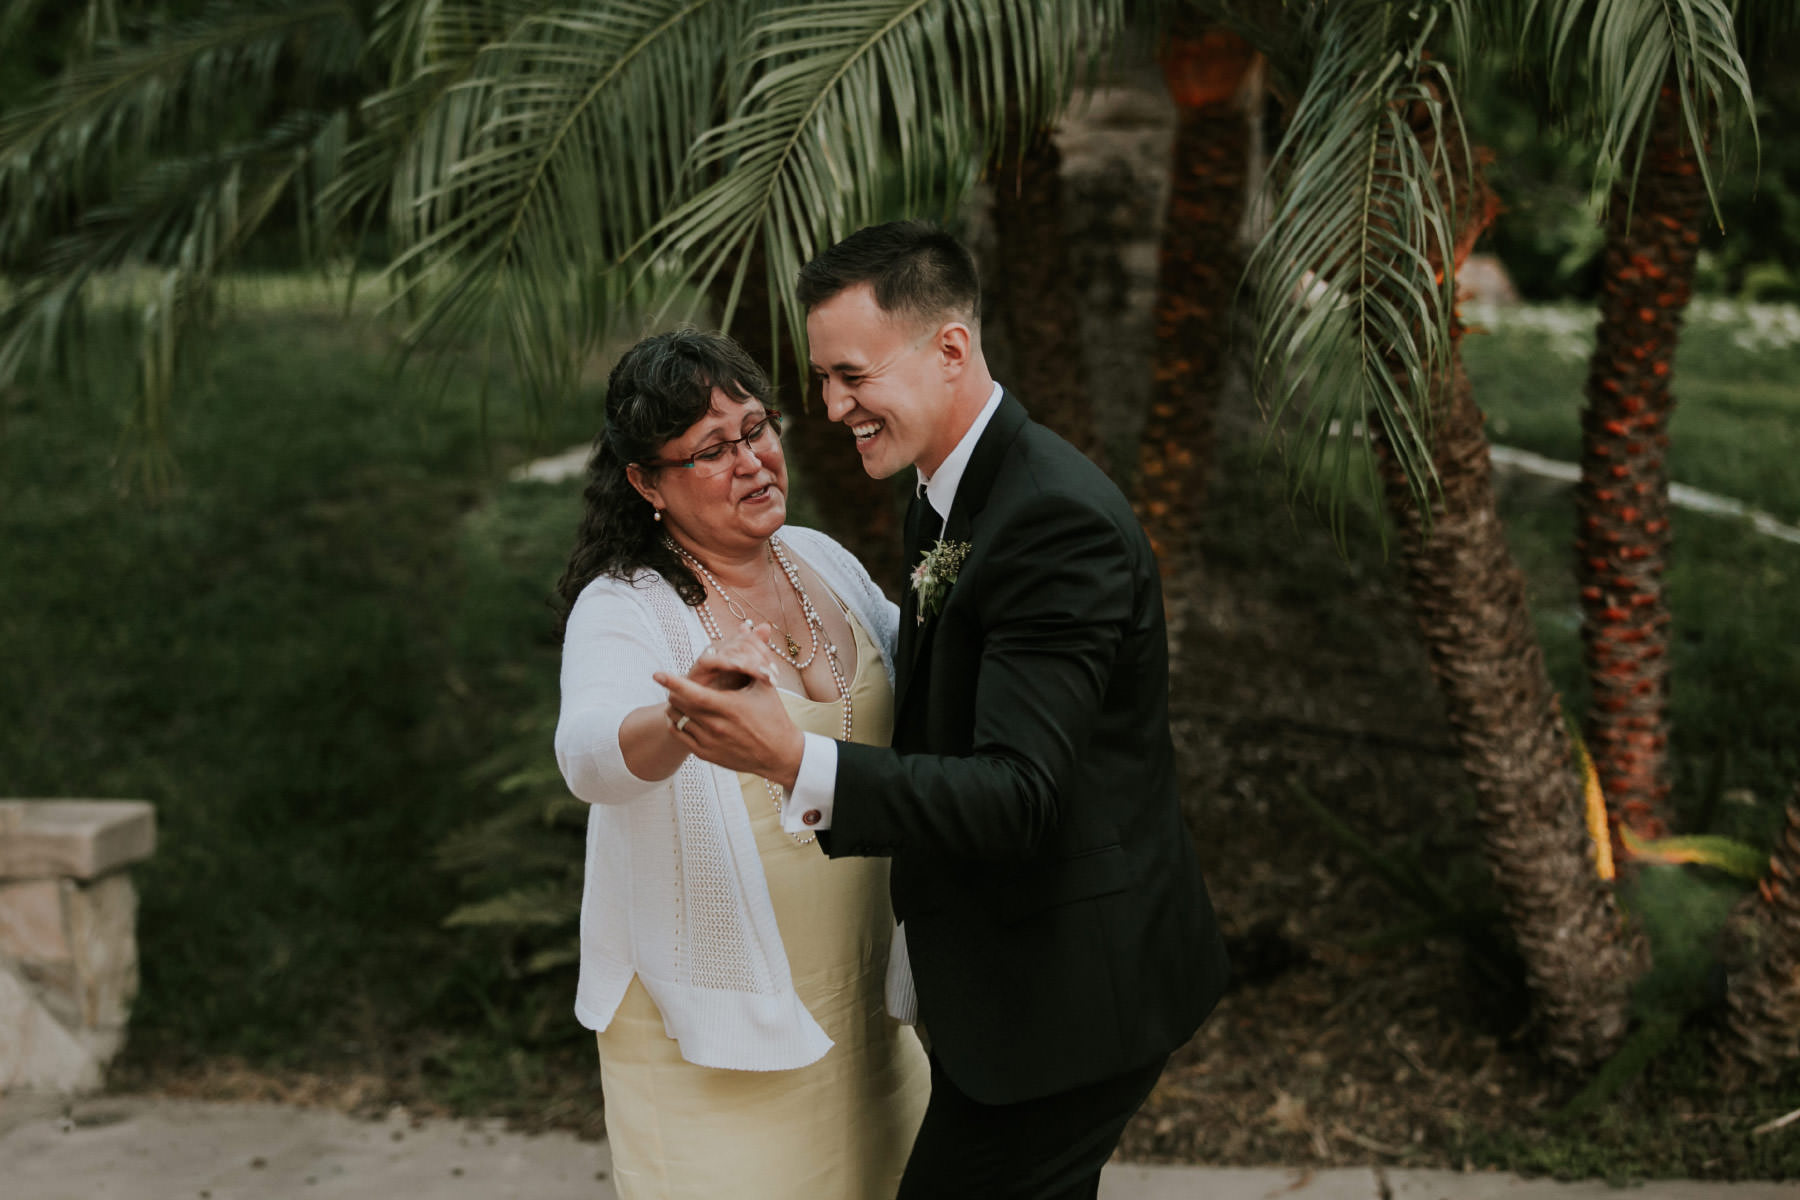 Mother and son dancing at San Diego backyard wedding